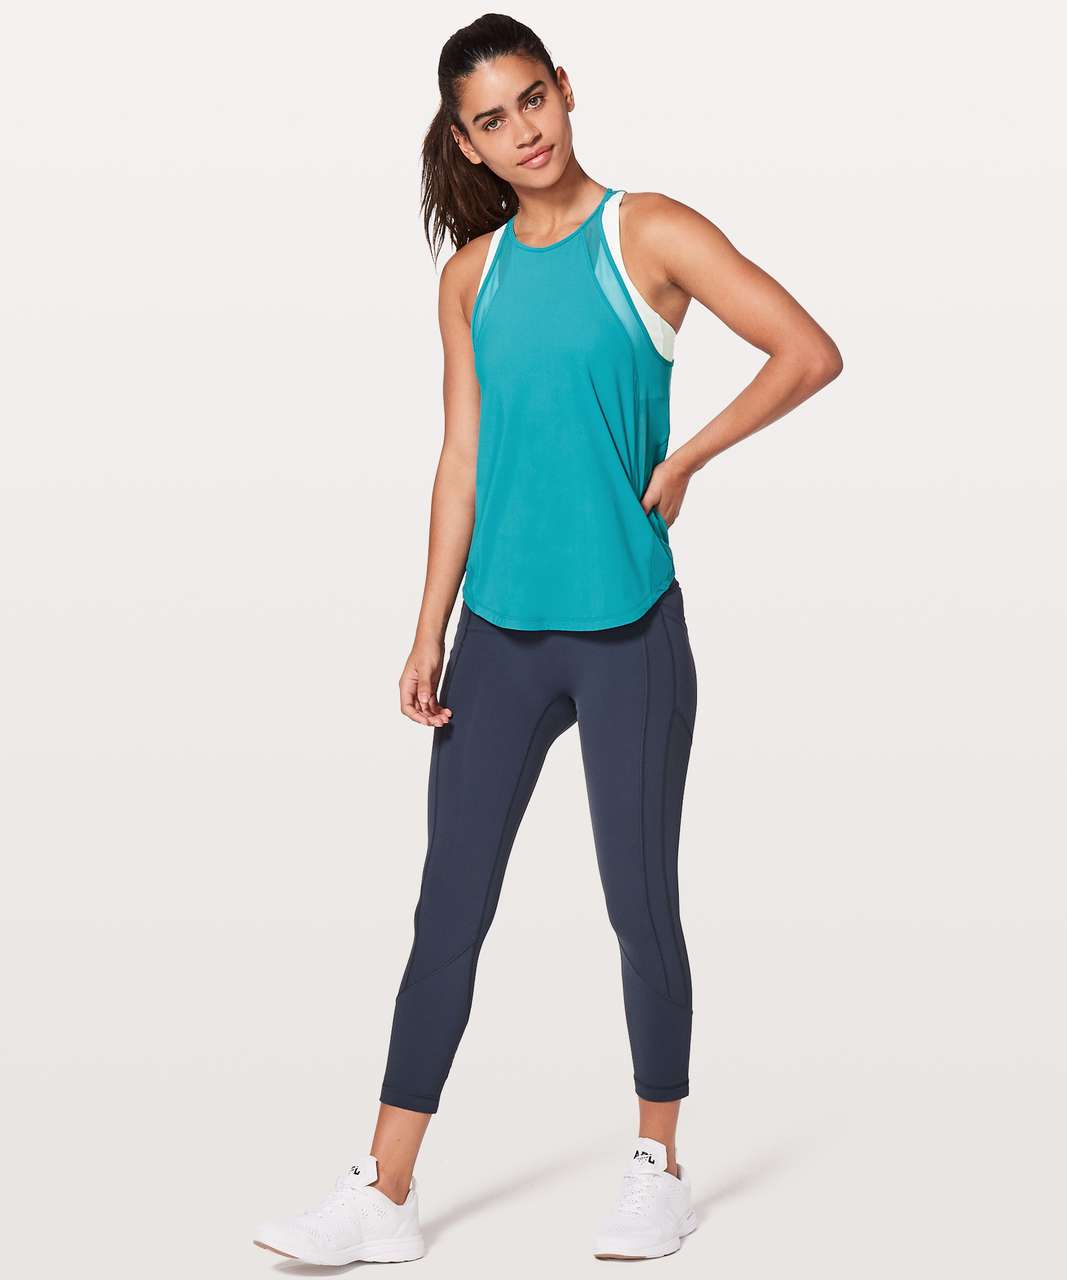 Lululemon Run Off-Route Tank - Teal Blue